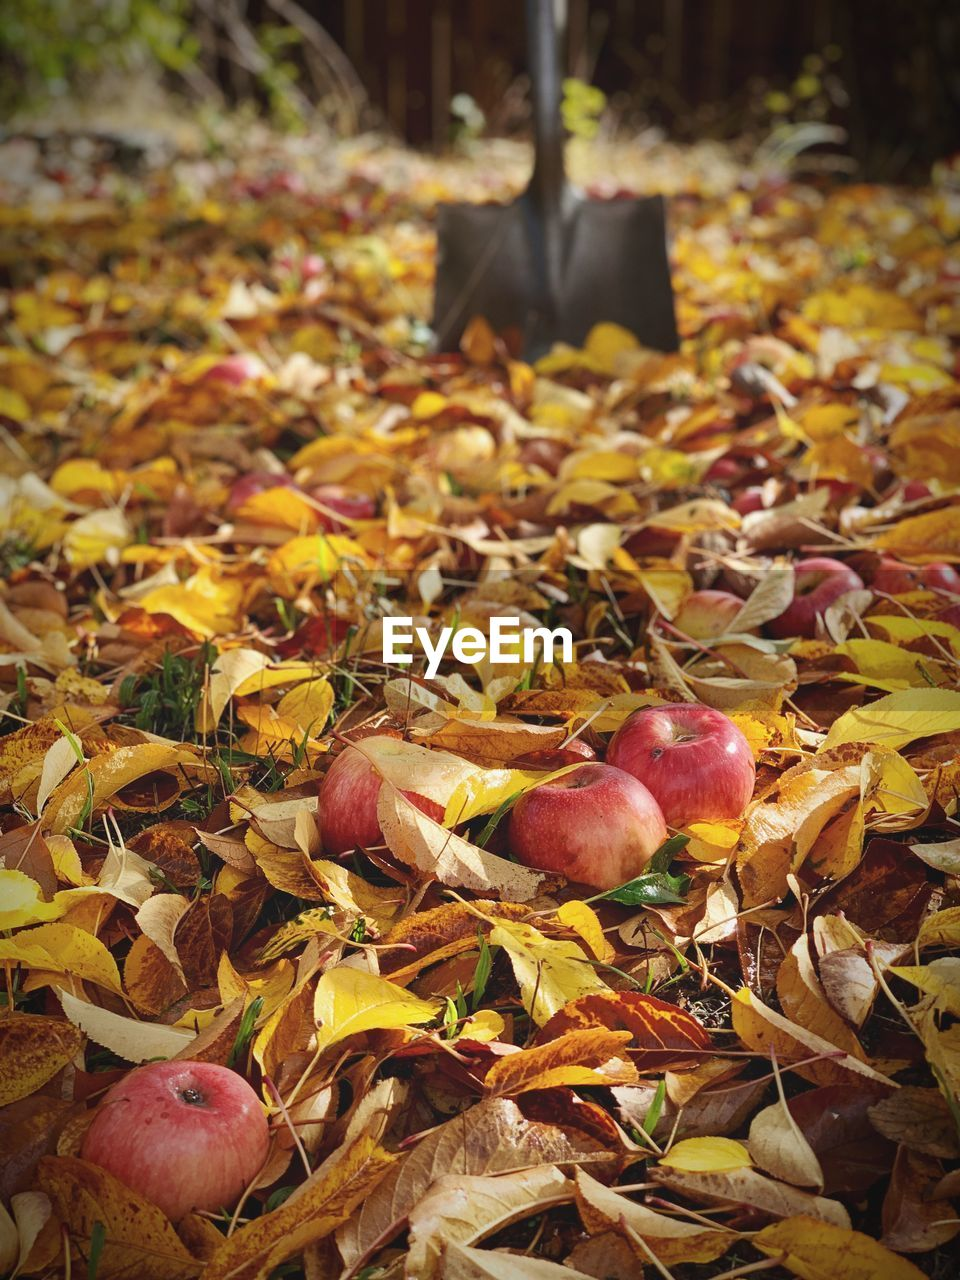 leaf, plant part, autumn, food and drink, food, leaves, healthy eating, change, land, nature, fruit, day, falling, no people, close-up, field, freshness, wellbeing, dry, outdoors, maple leaf, fall